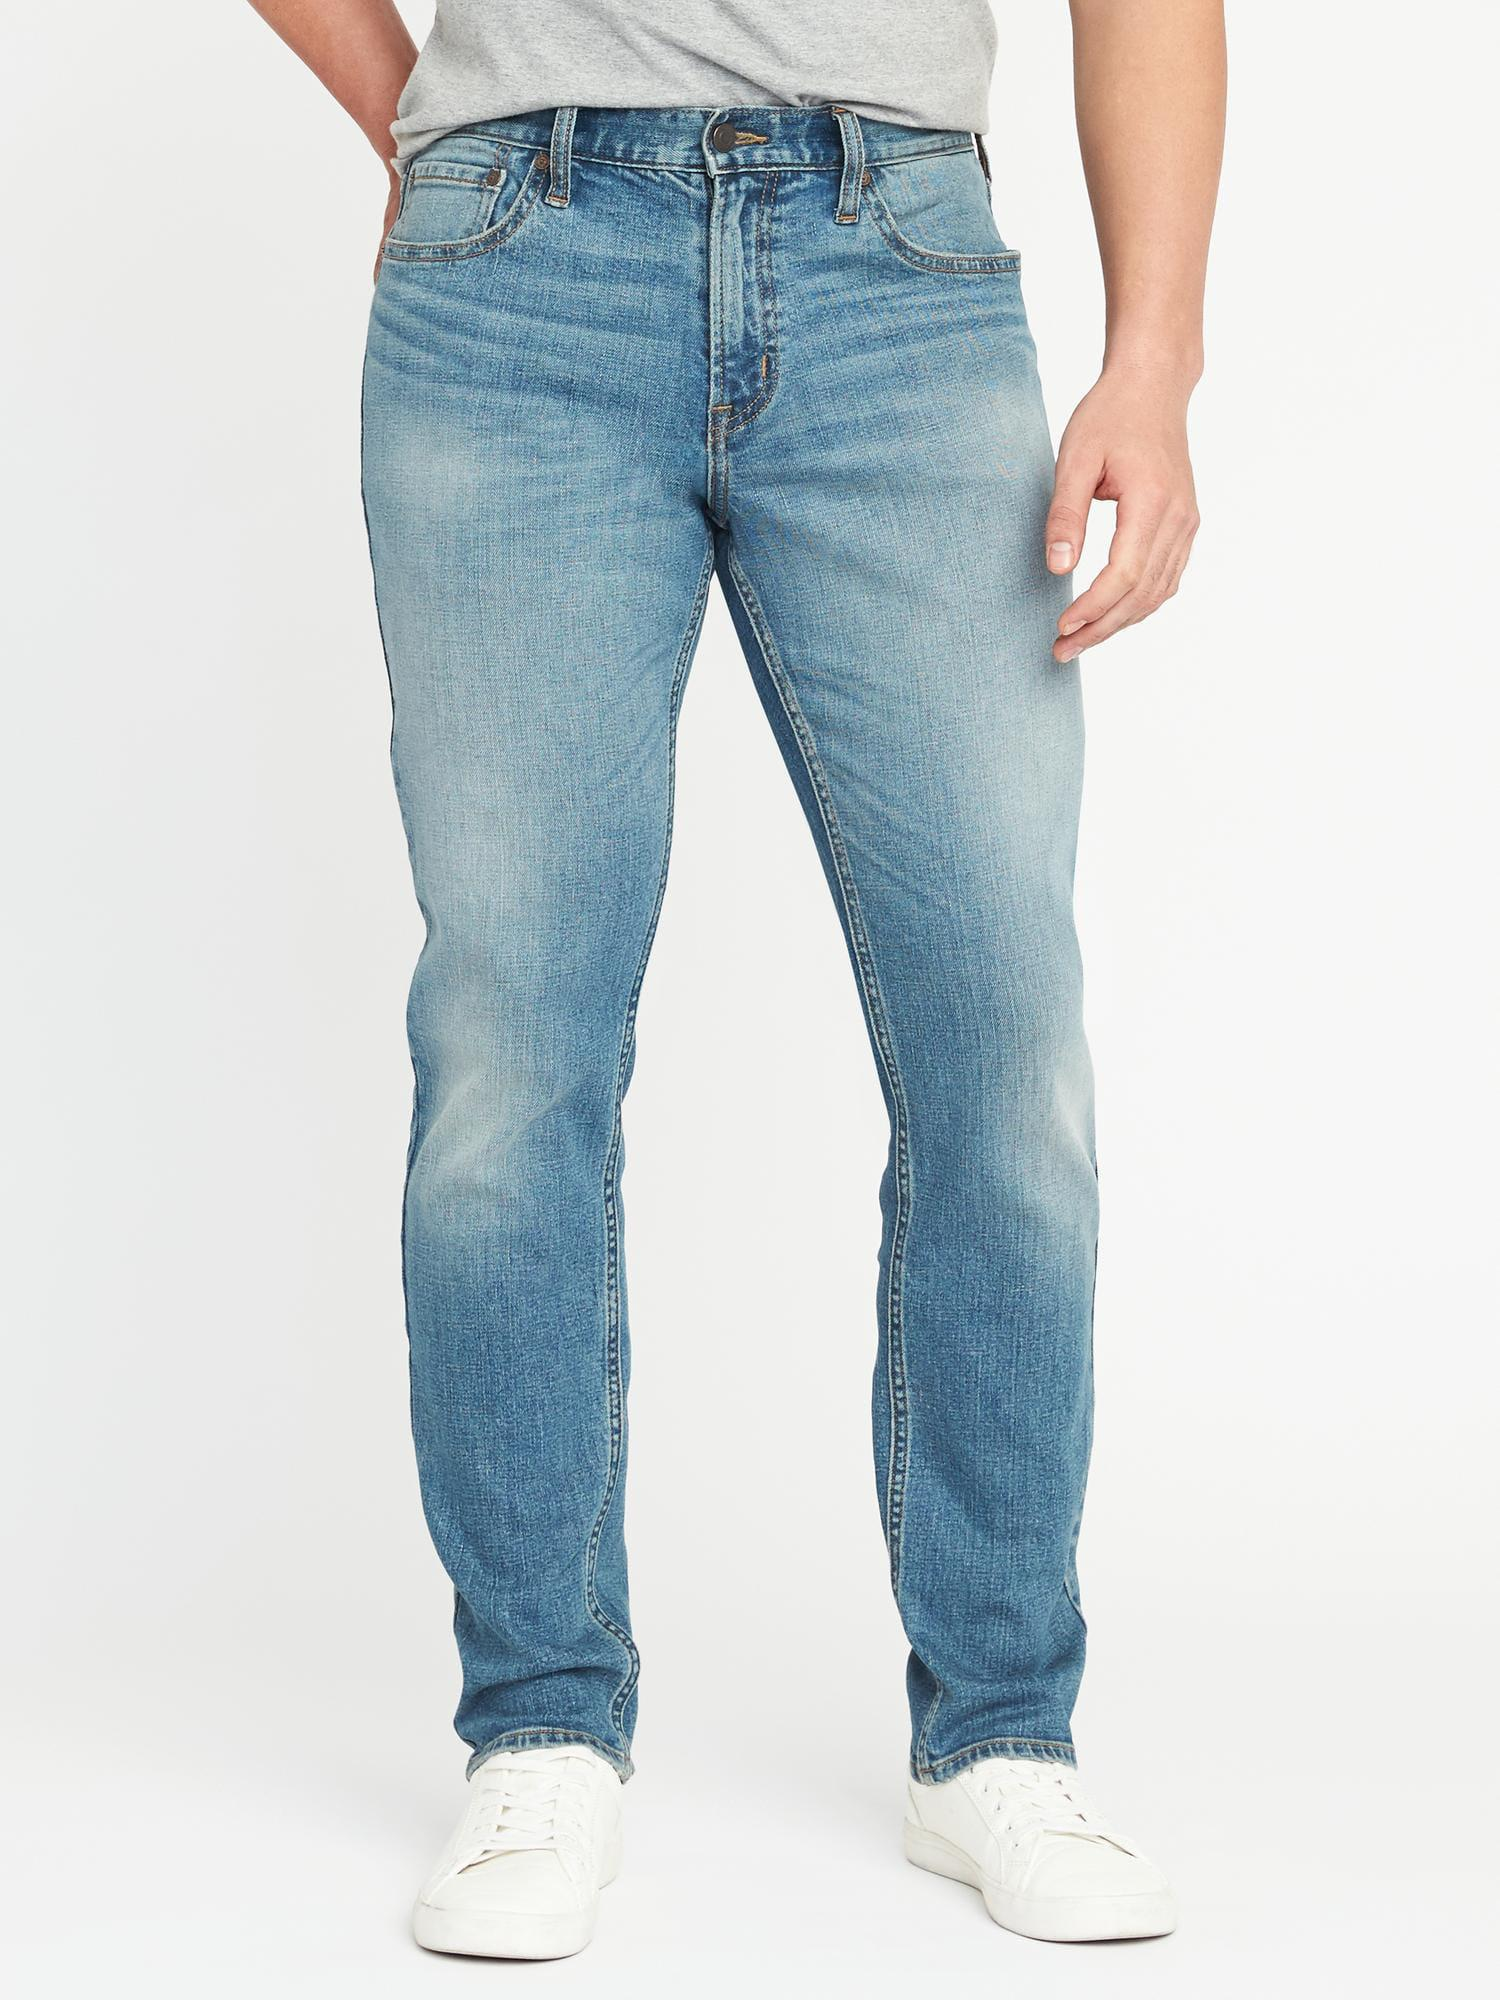 5badce240 Lyst - Old Navy Athletic Built-in Flex Light-wash Jeans in Blue for Men